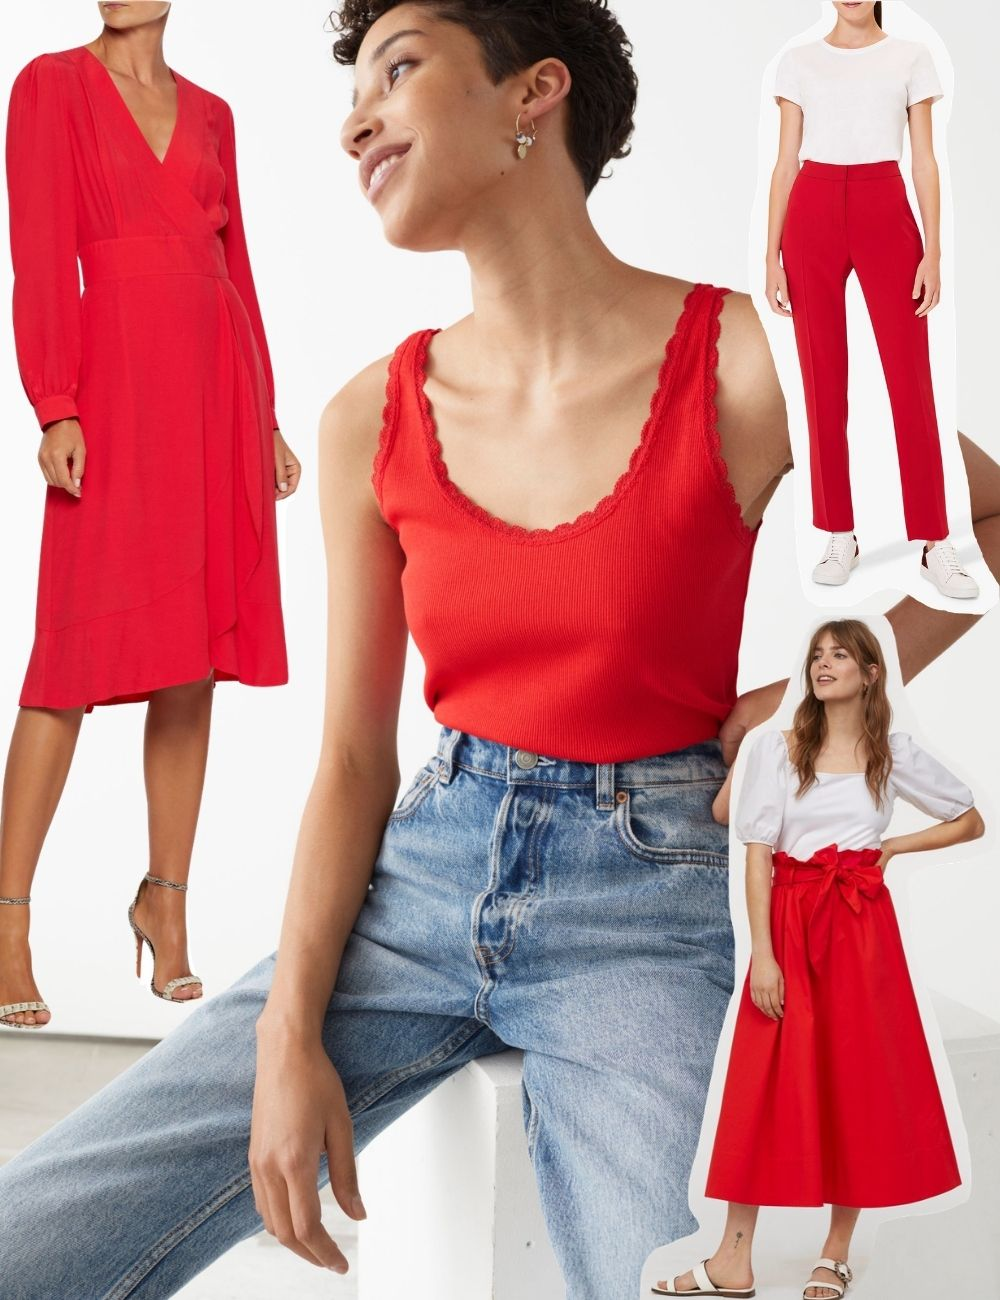 scarlet red fashion trend aw20